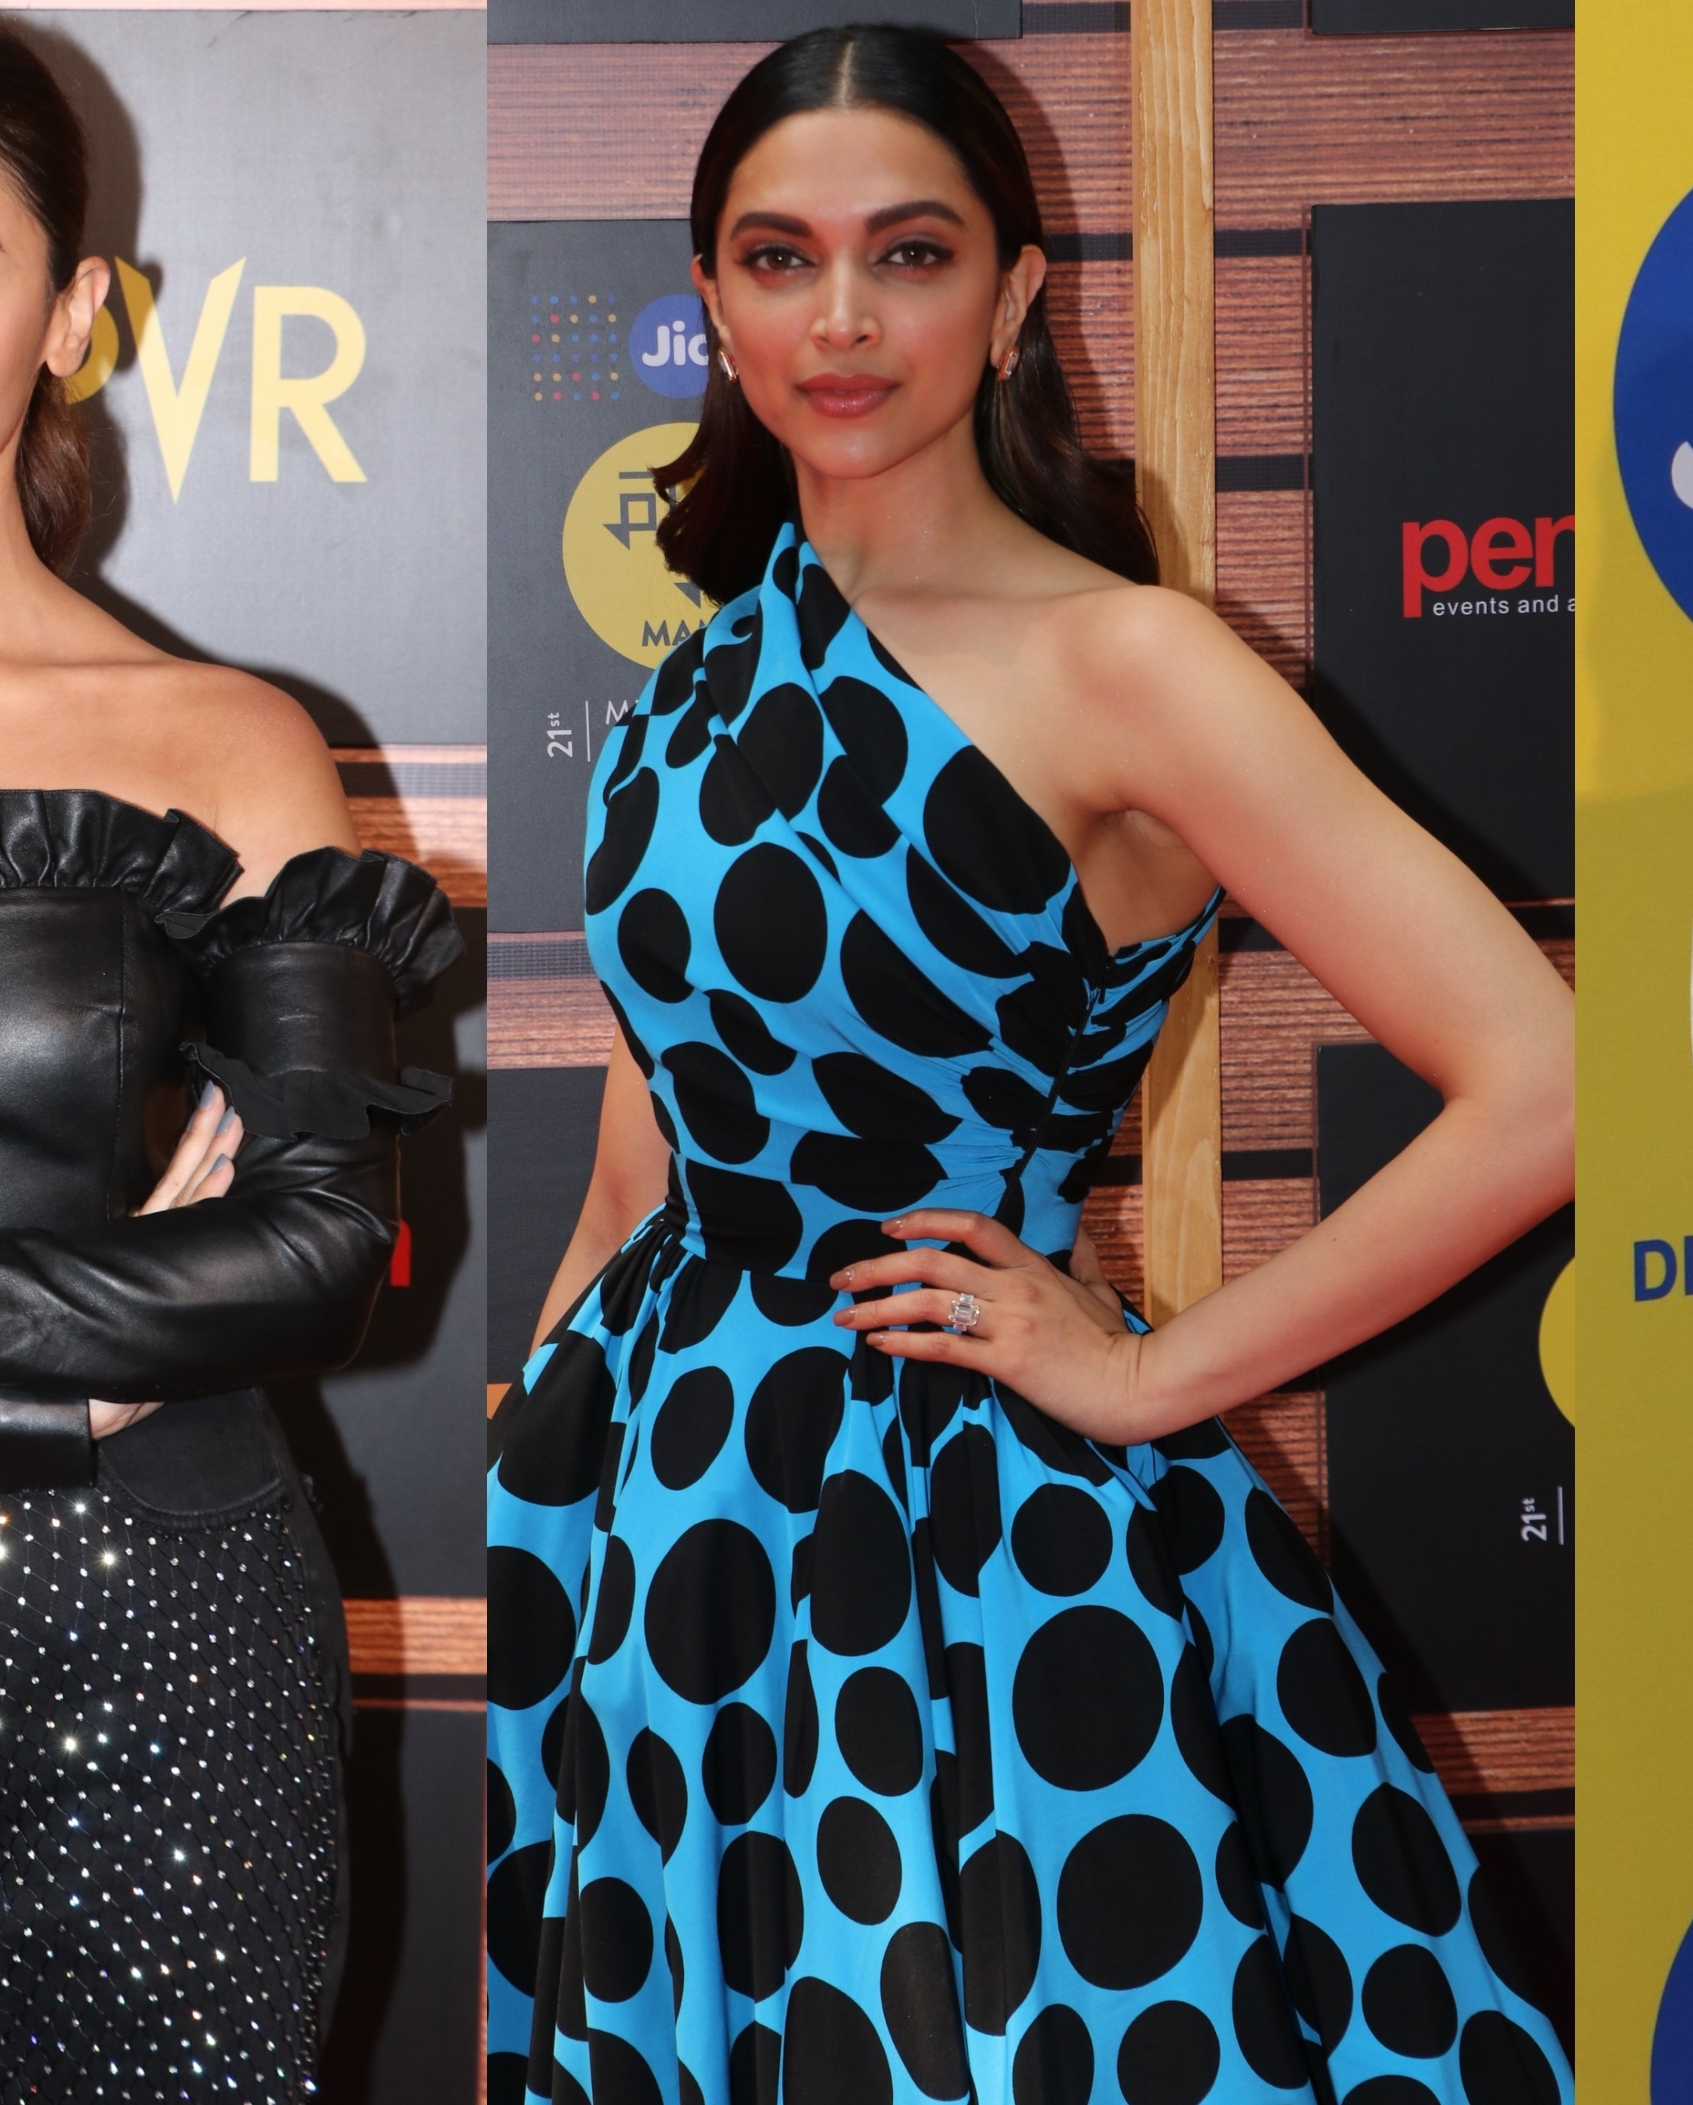 MAMI Festival 2019: Deepika Padukone, Kareena Kapoor, other B-town celebs slay on red carpet